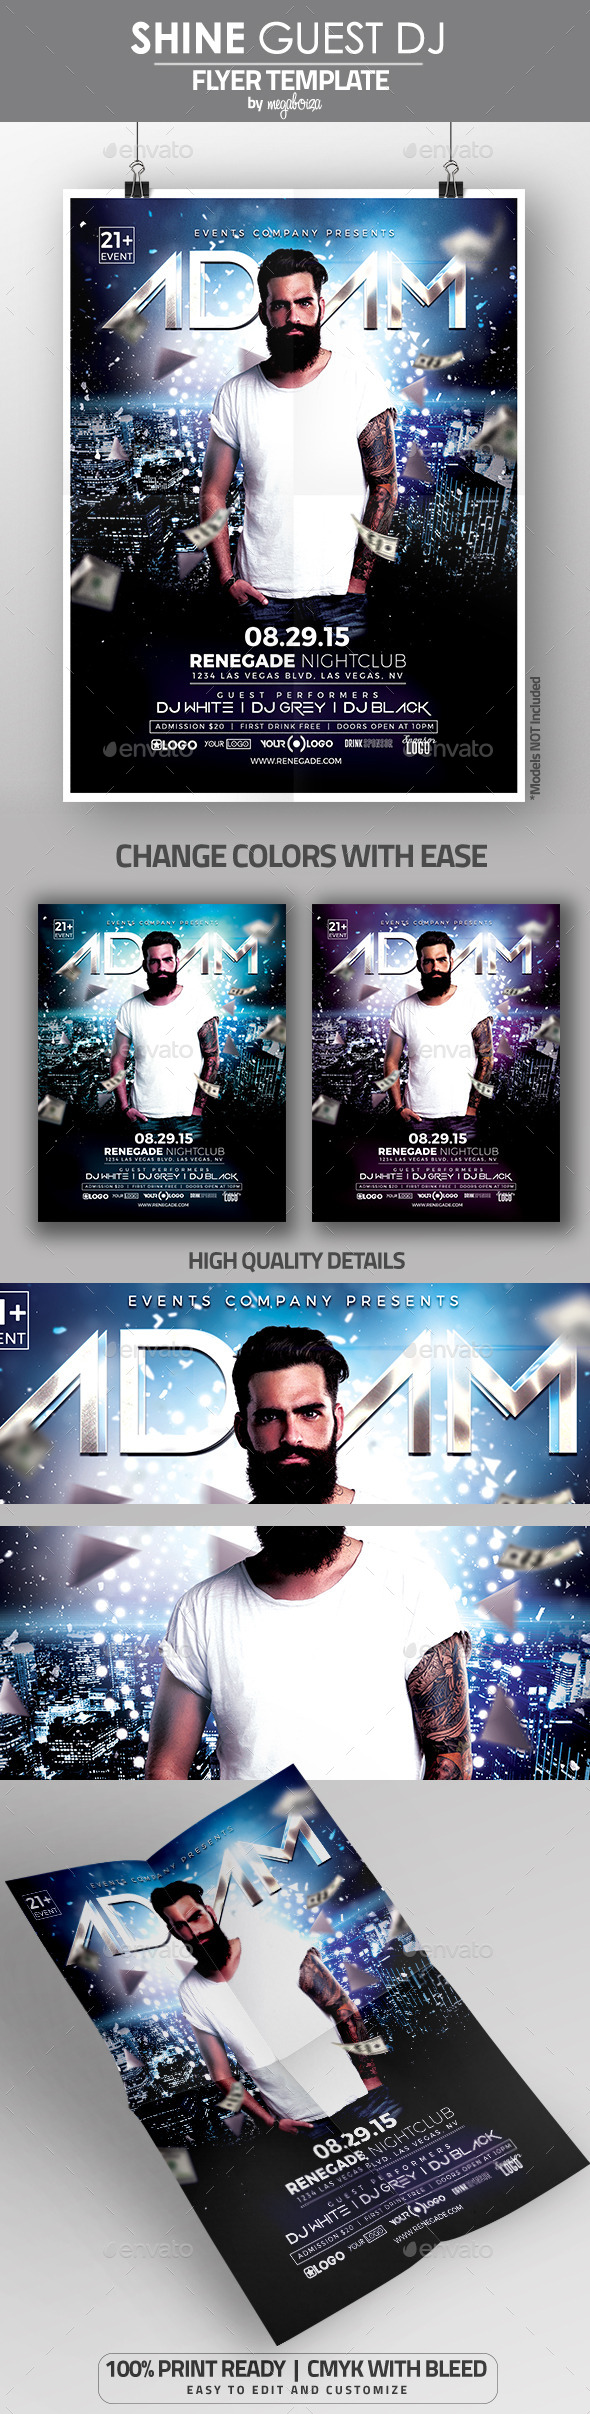 Shine Guest DJ Flyer Poster Template